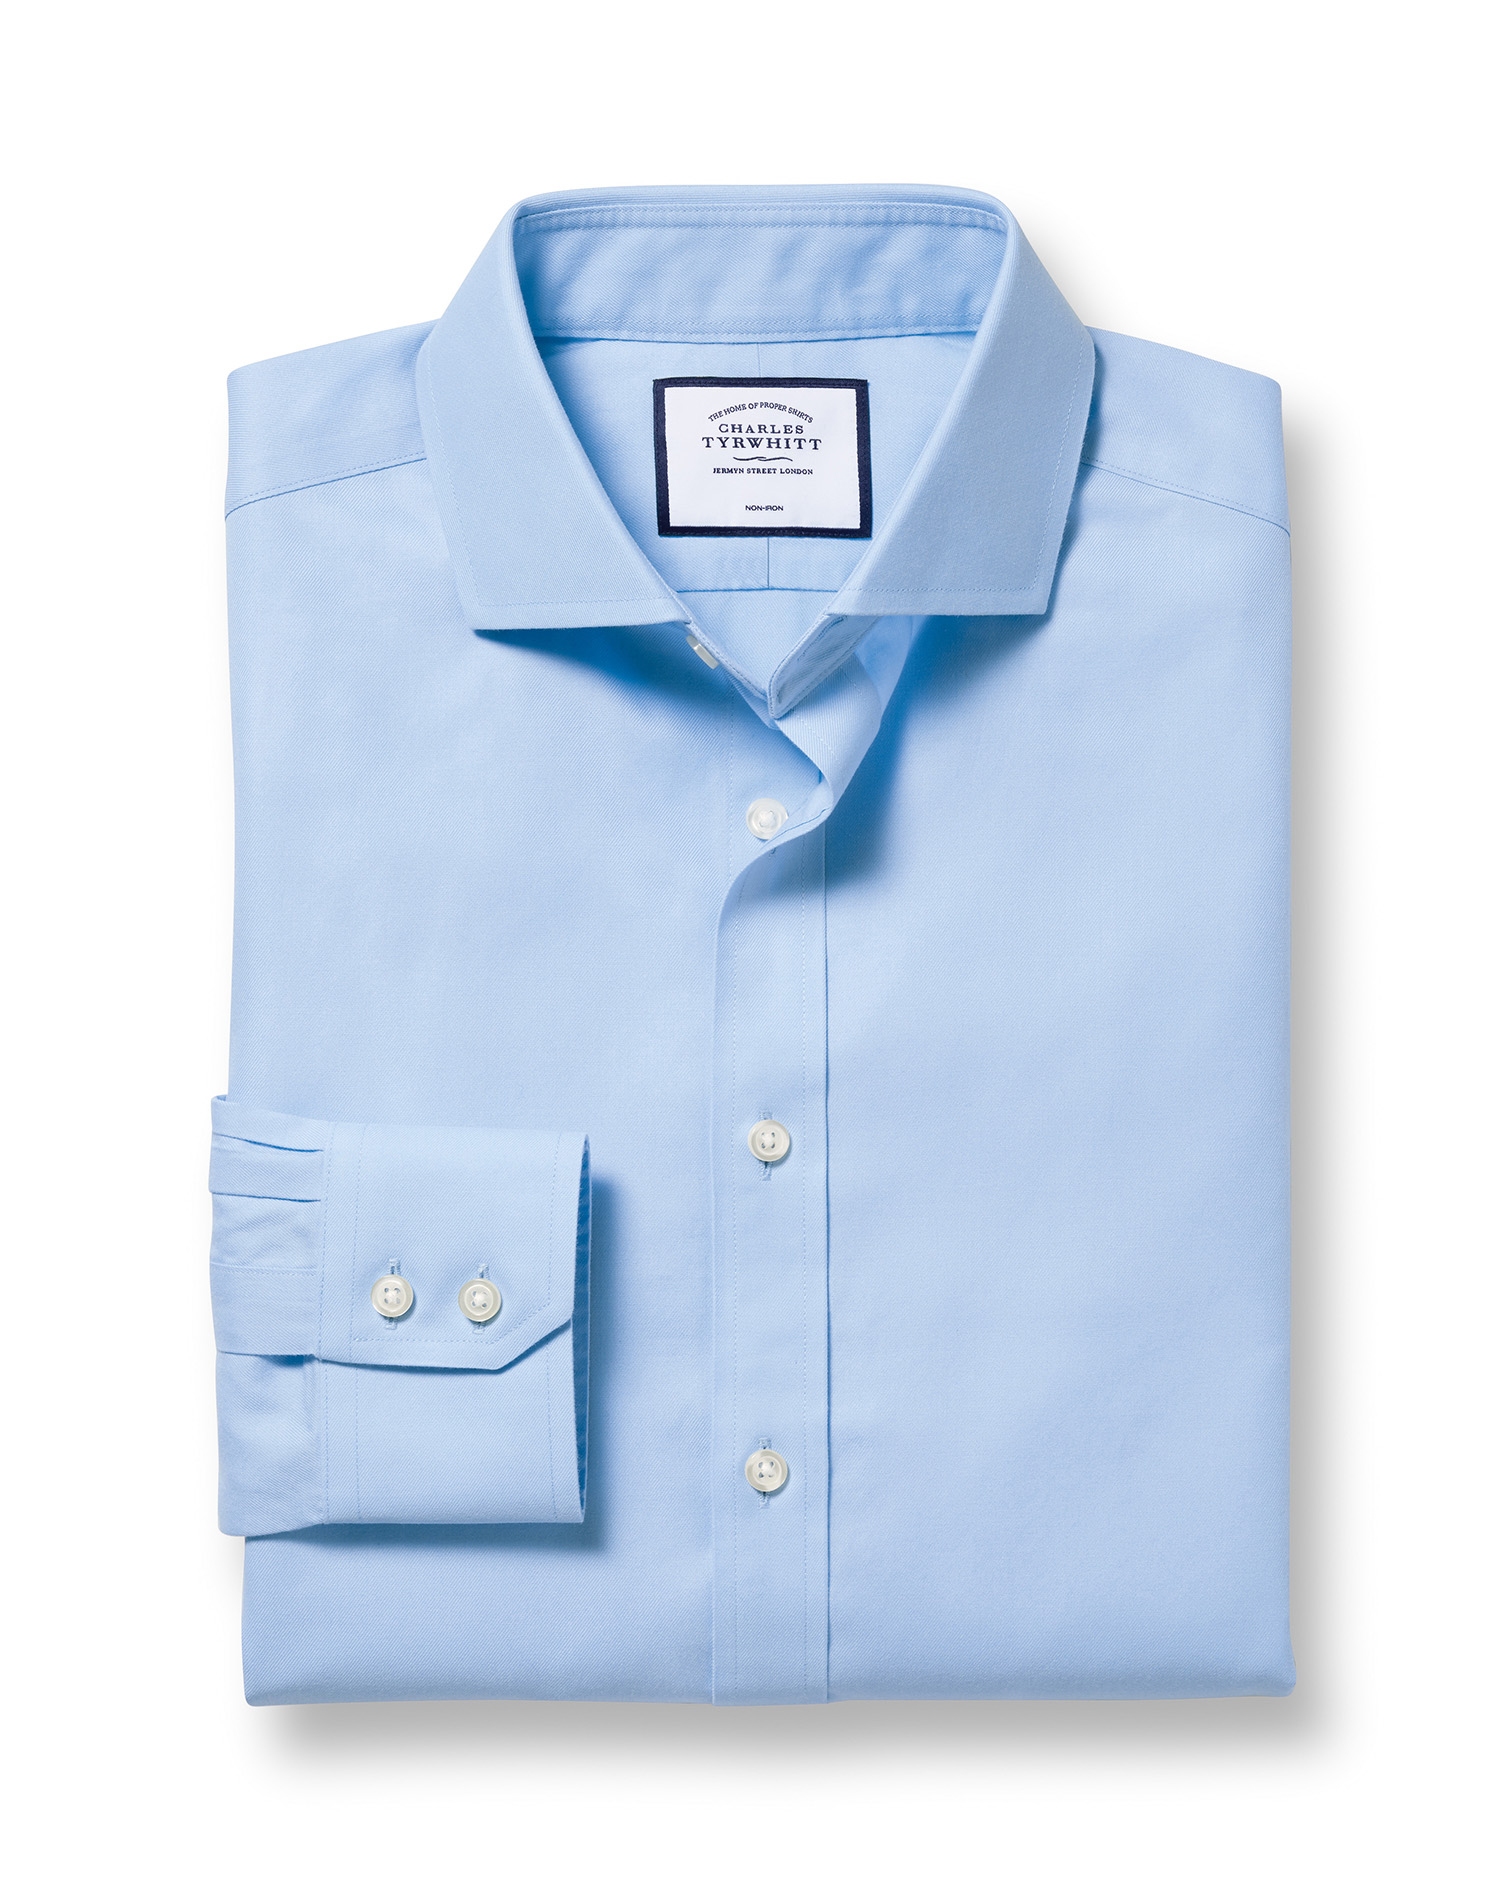 Extra Slim Fit Cutaway Non-Iron Twill Sky Blue Cotton Formal Shirt Double Cuff Size 17/36 by Charles